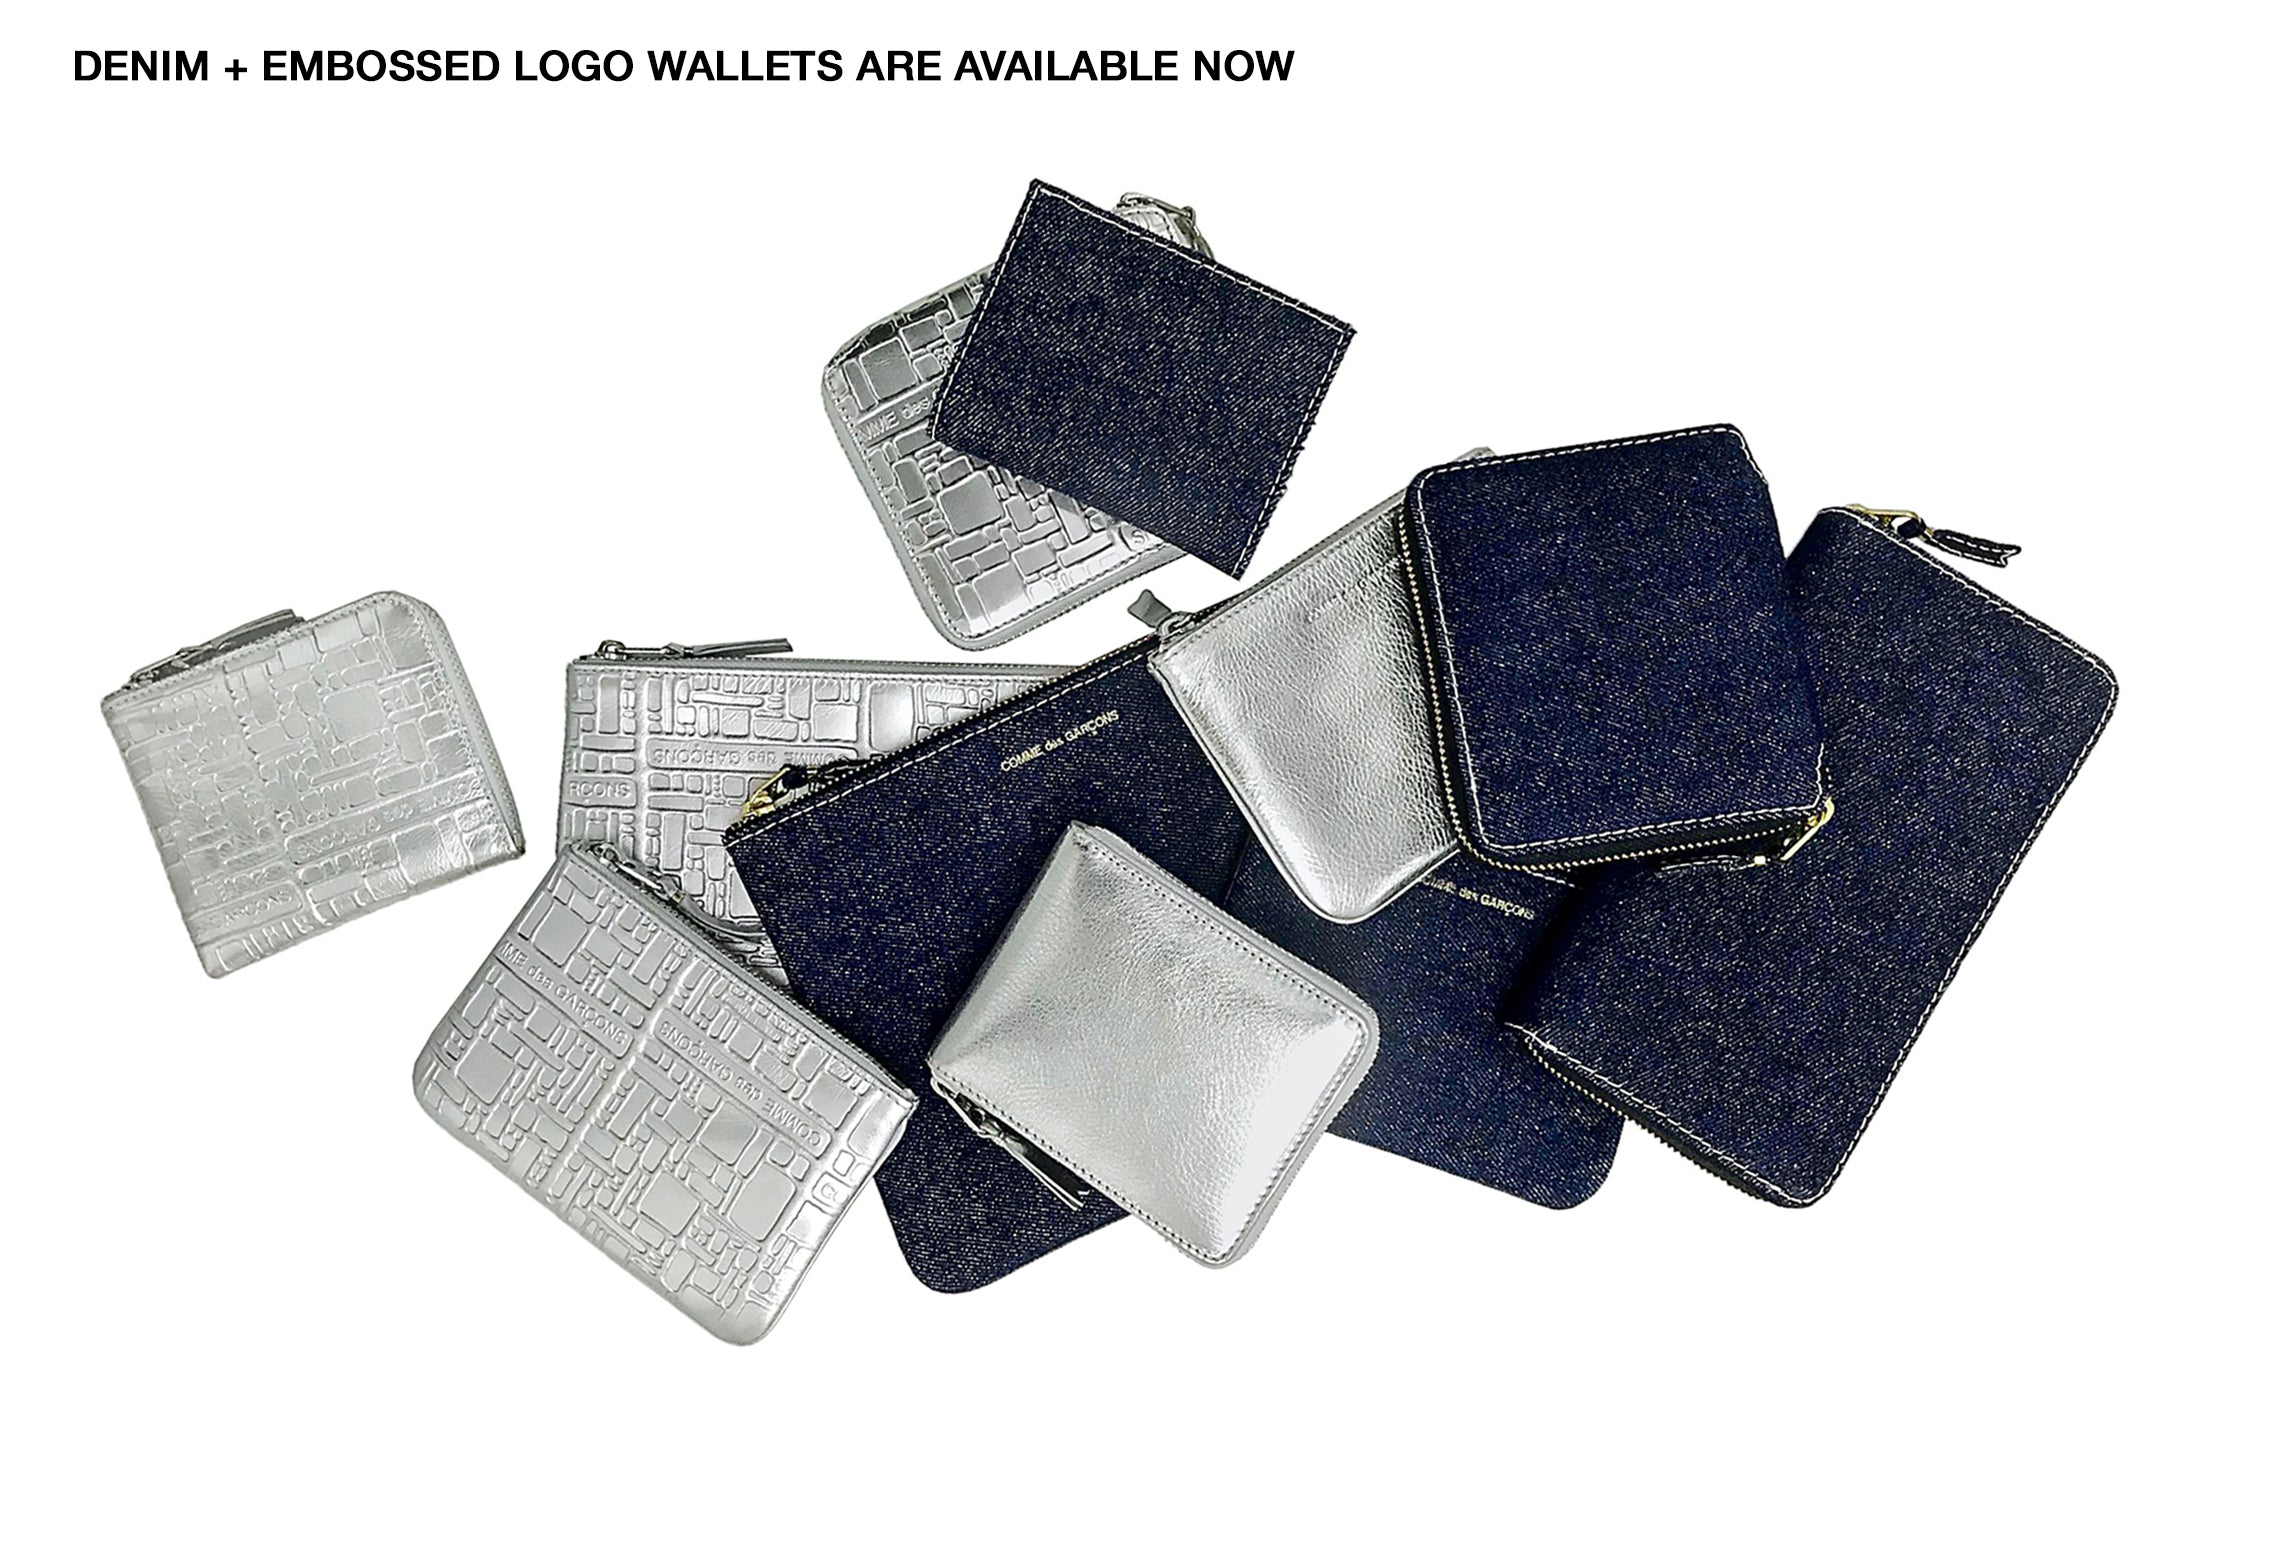 comme des garcons germany online shop banner CDG Deutschland DENIM und EMBOSSED LOGO WALLETS